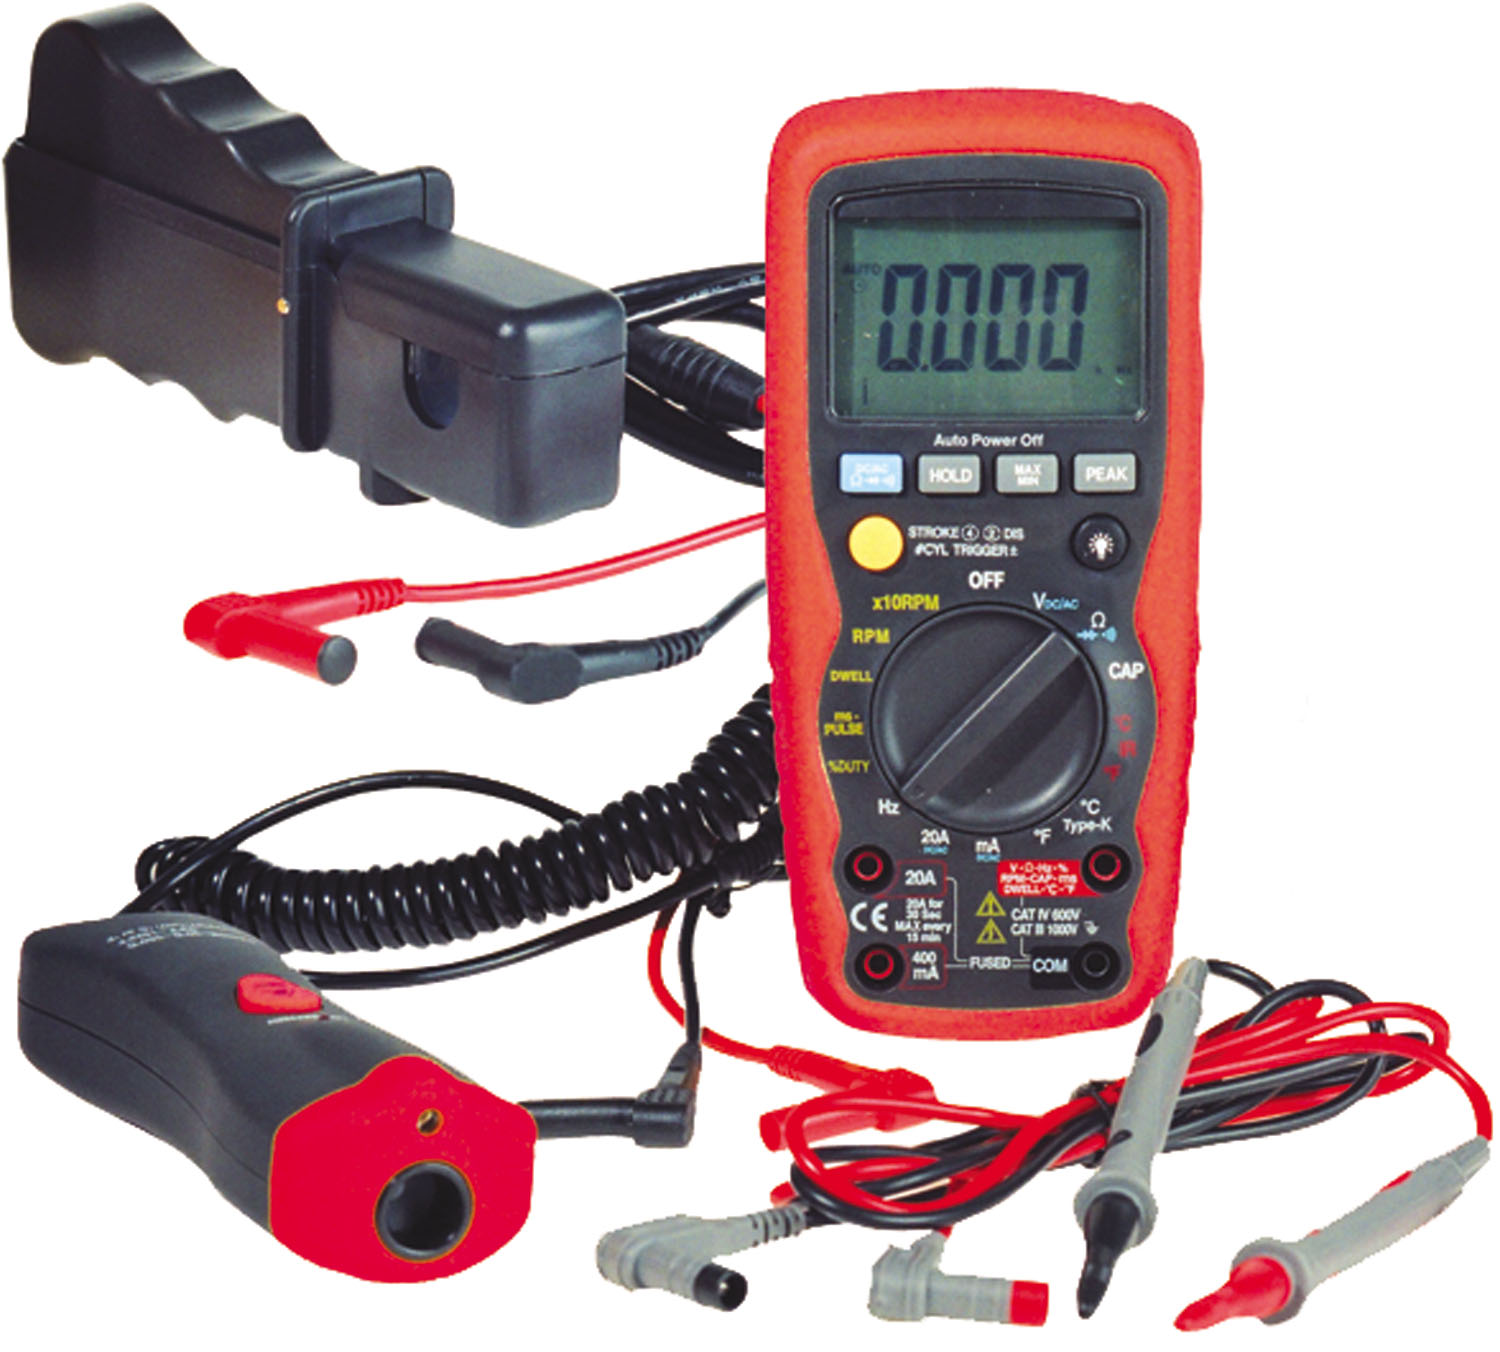 Electronic Specialties Premium Automotive Digital Multimeter with Infrared Temperature Adapter Kit